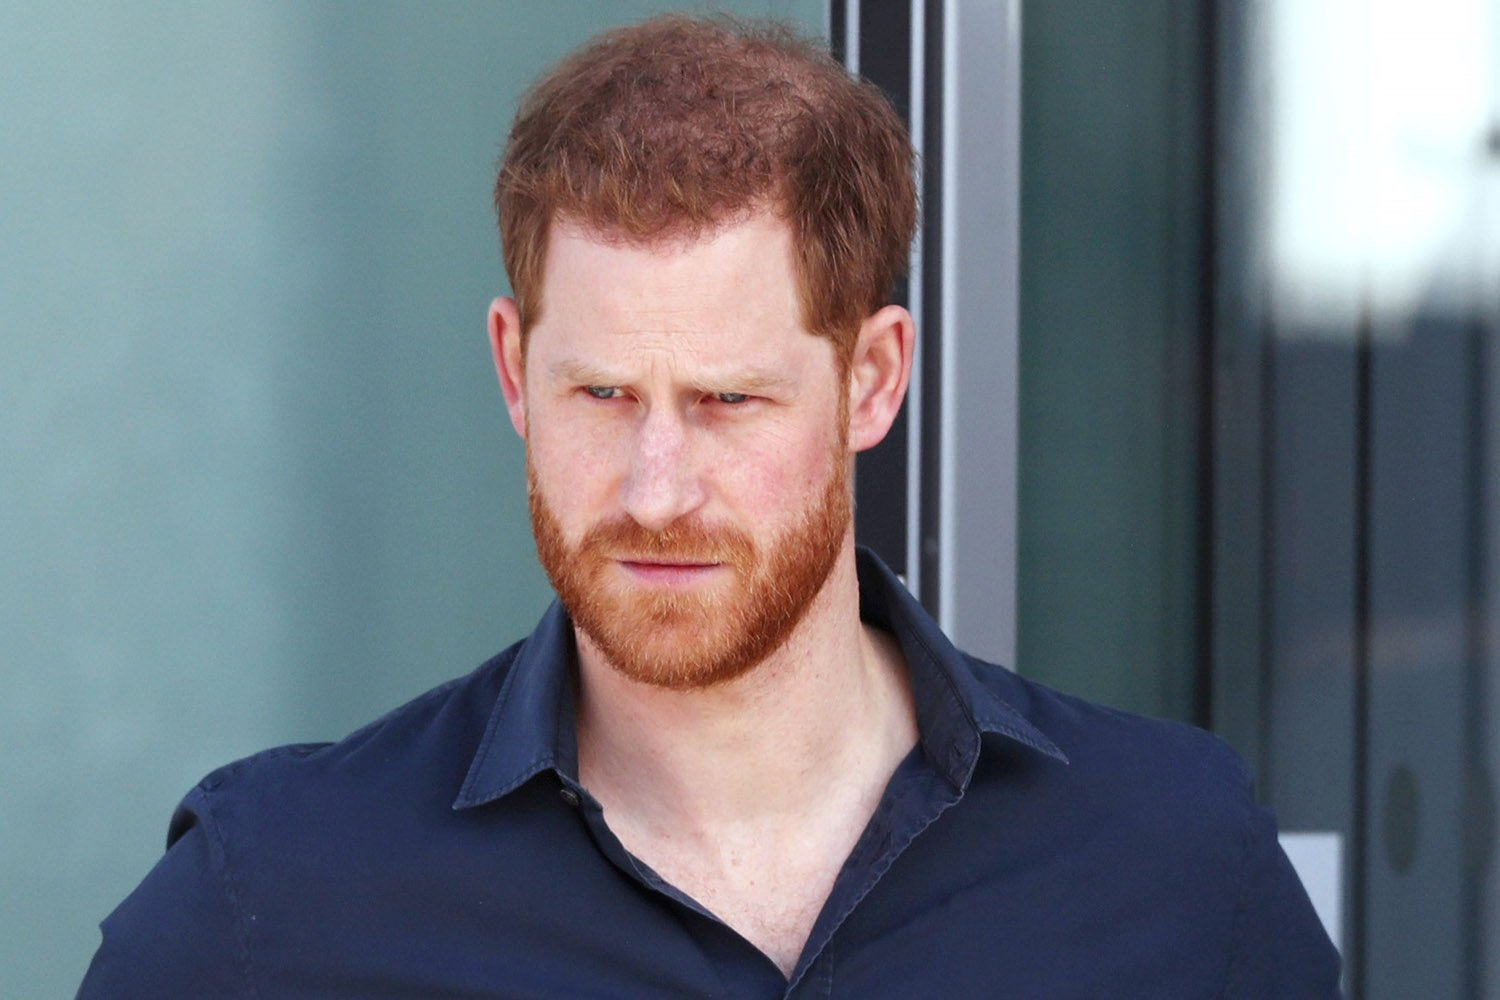 Prince Harry says 'life has changed dramatically' in video from LA home